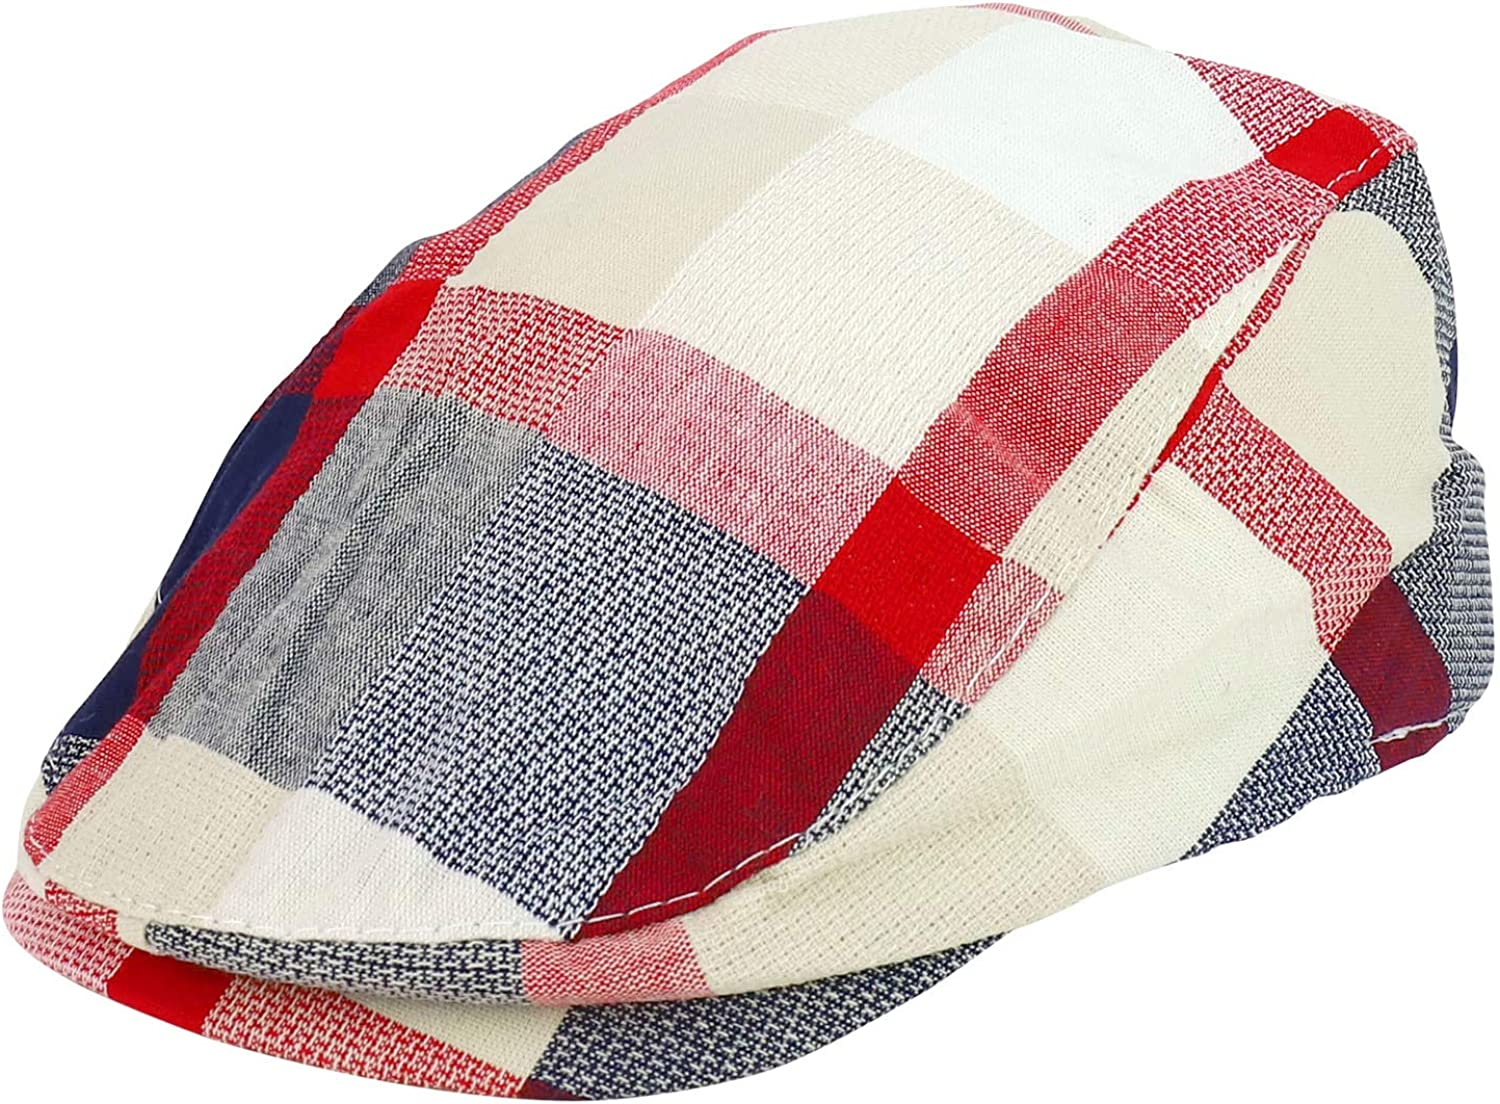 Armycrew Toddler Child's Cool Summer Plaid Ivy Cap with Elastic Back